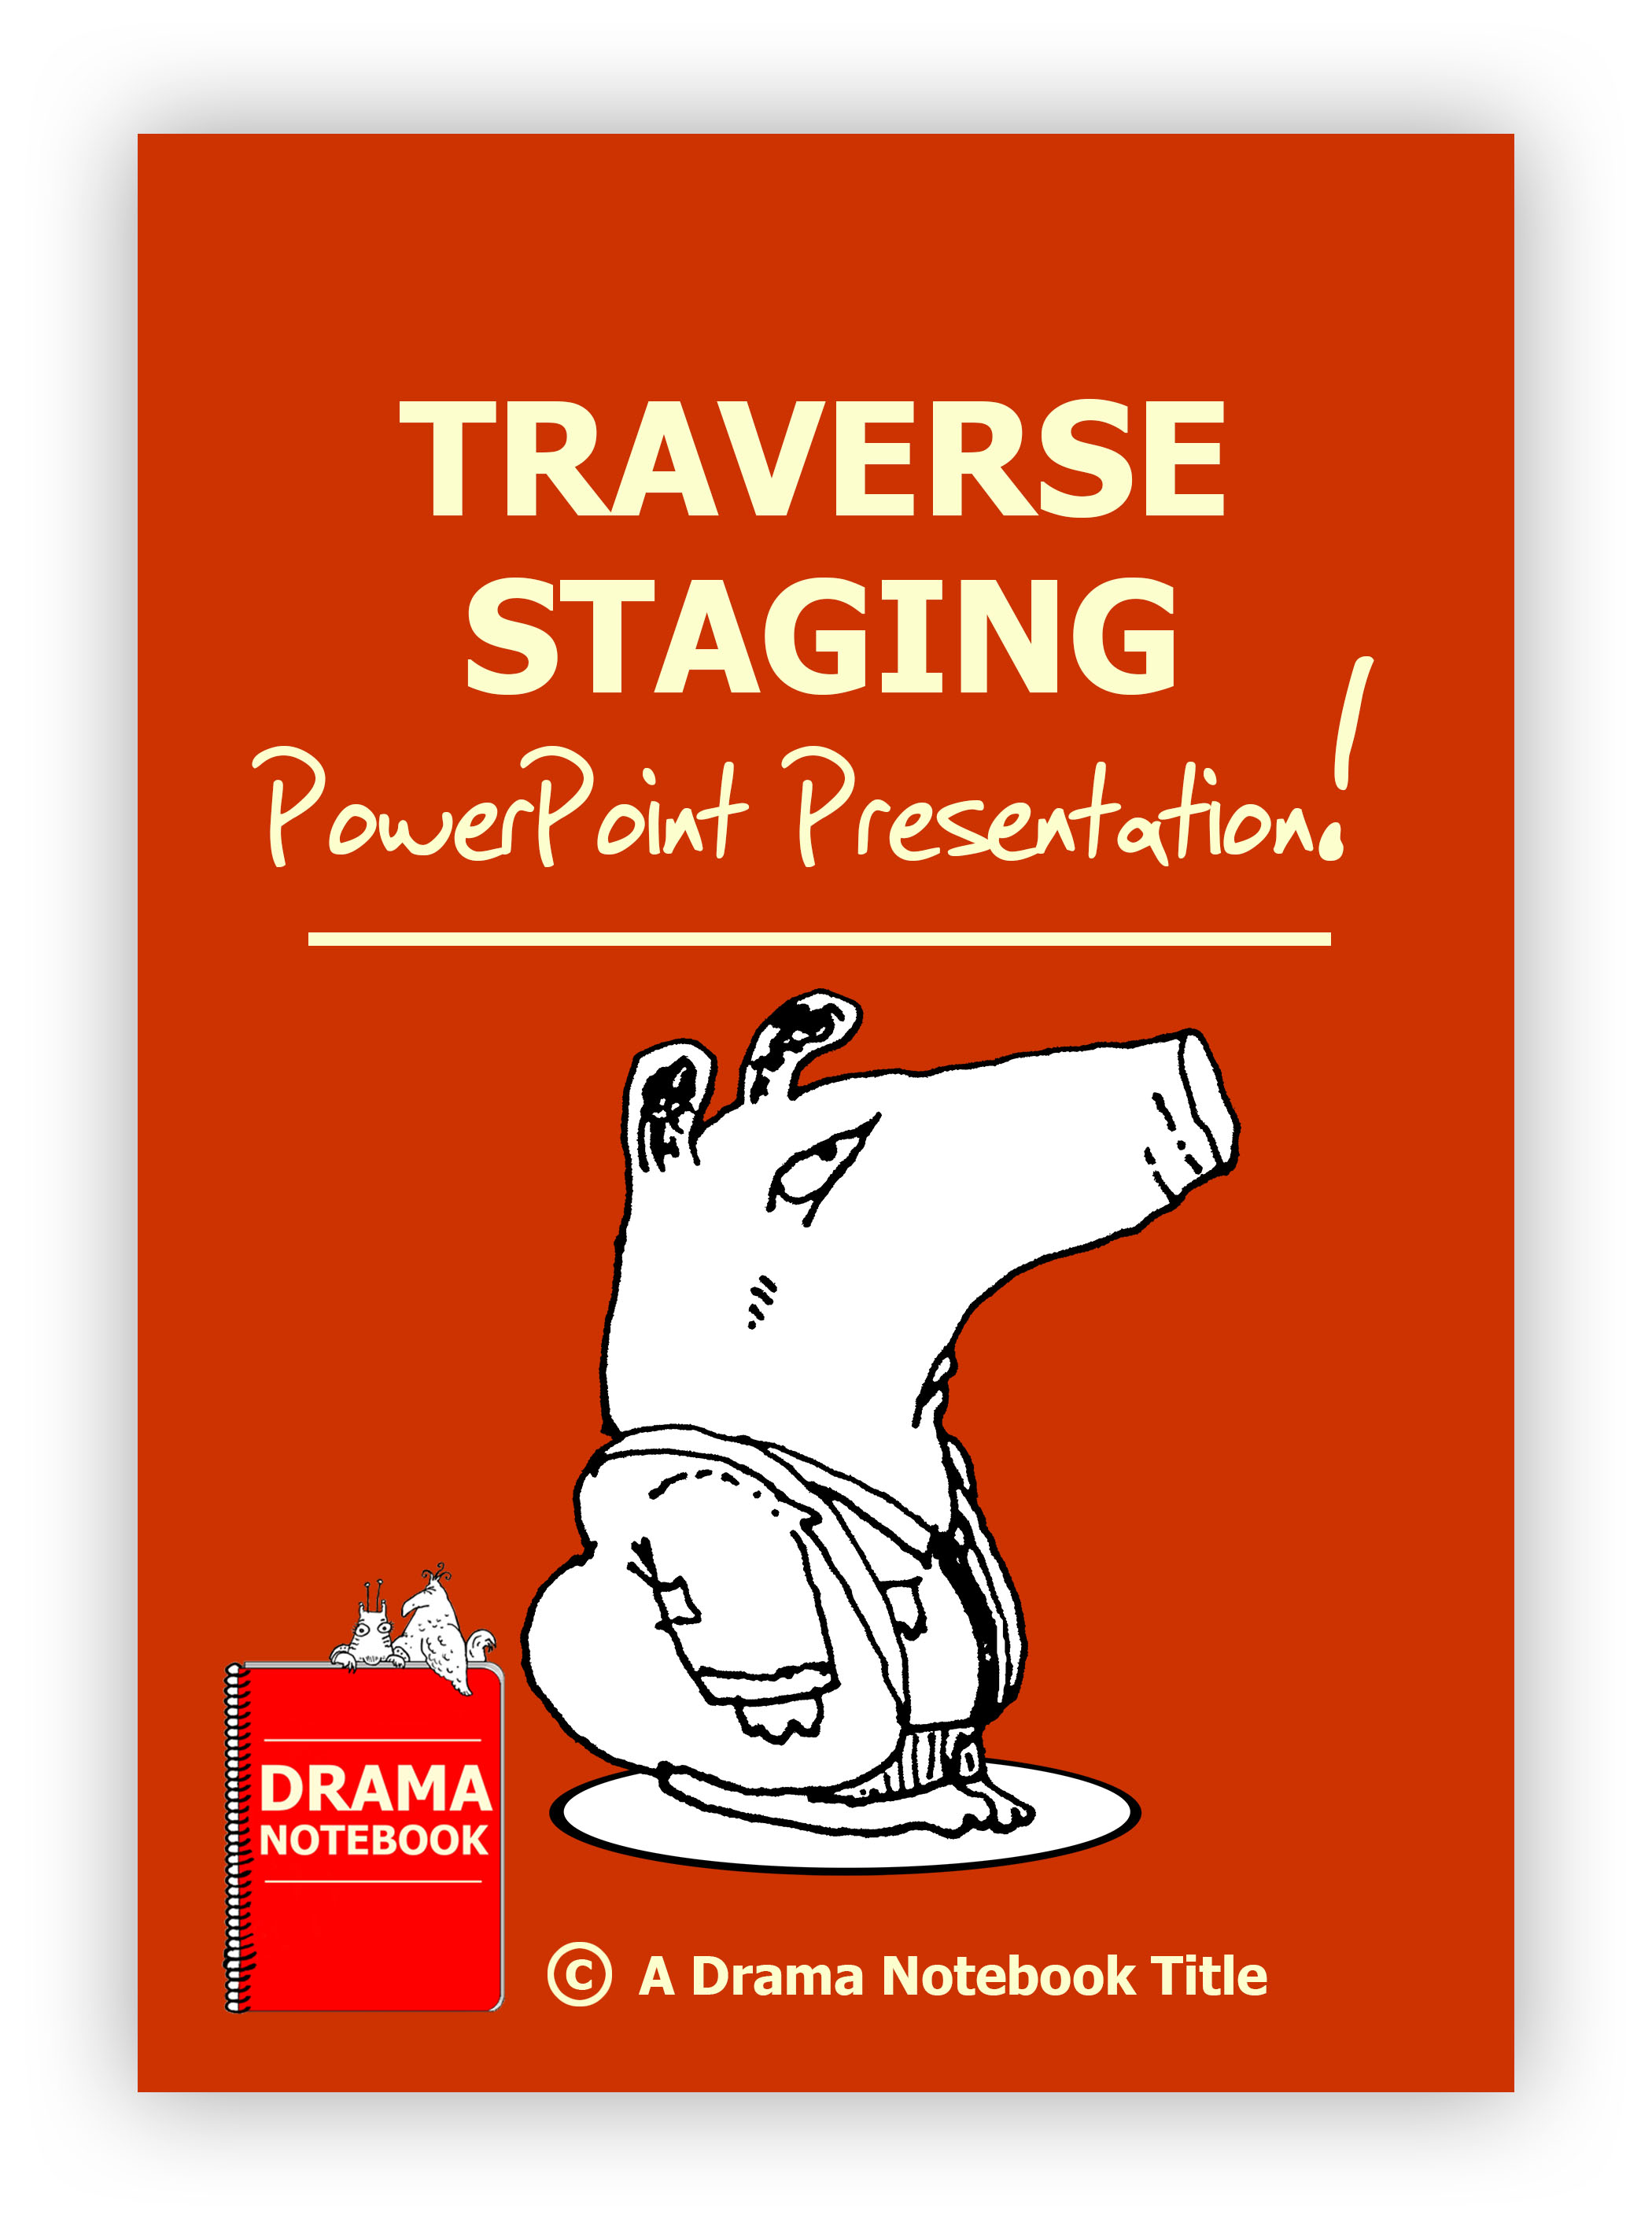 Traverse Staging PowerPoint